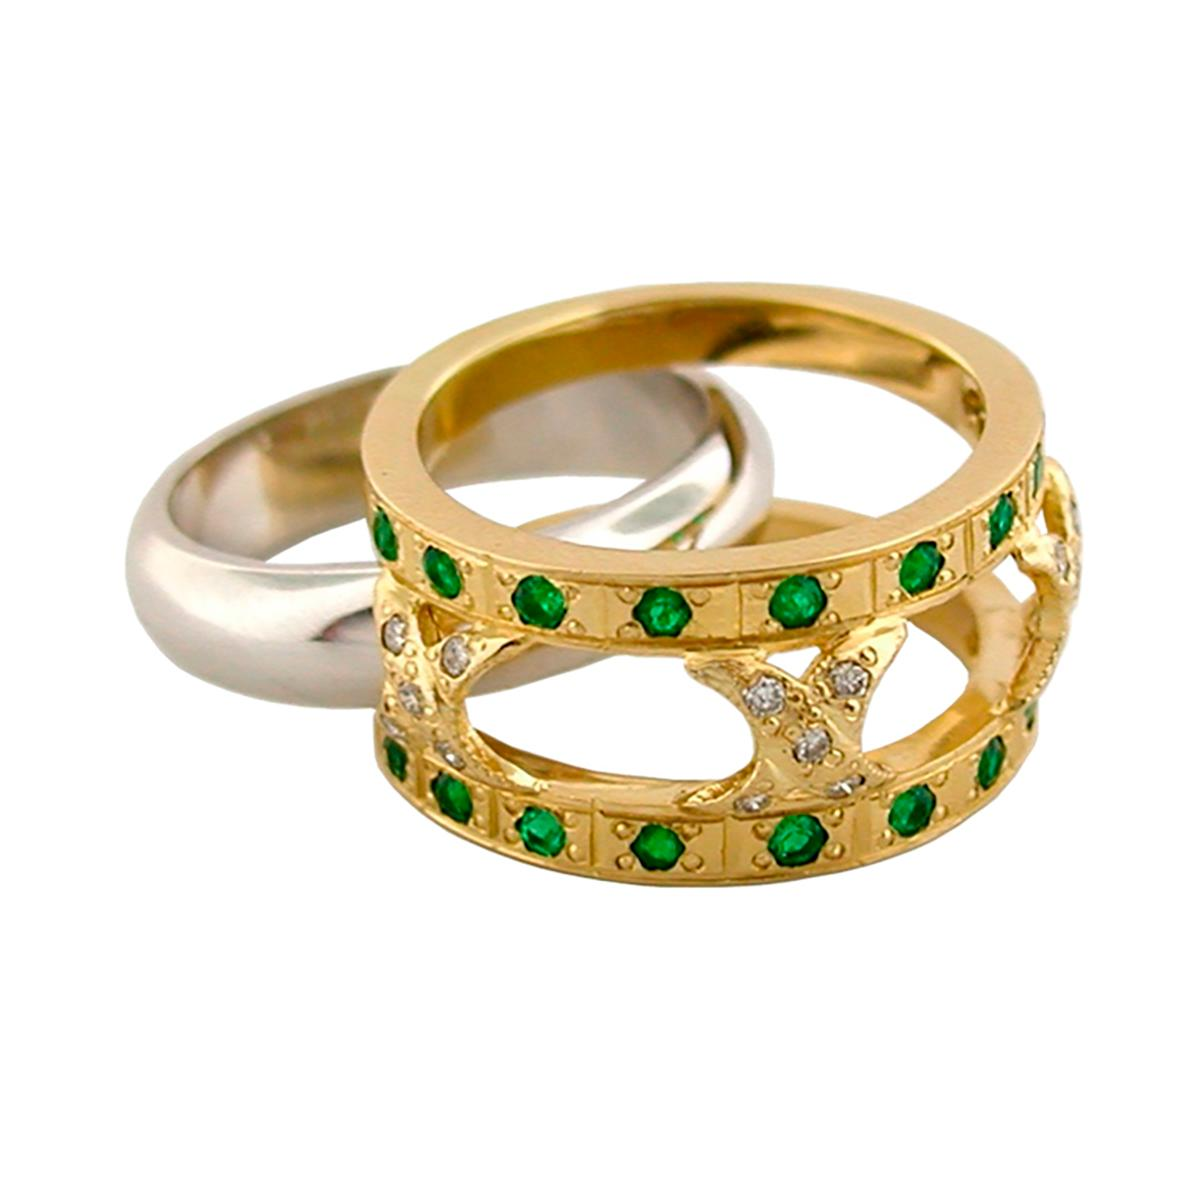 2-tones-emerald-and-diamond-band-ring-in-18k-gold